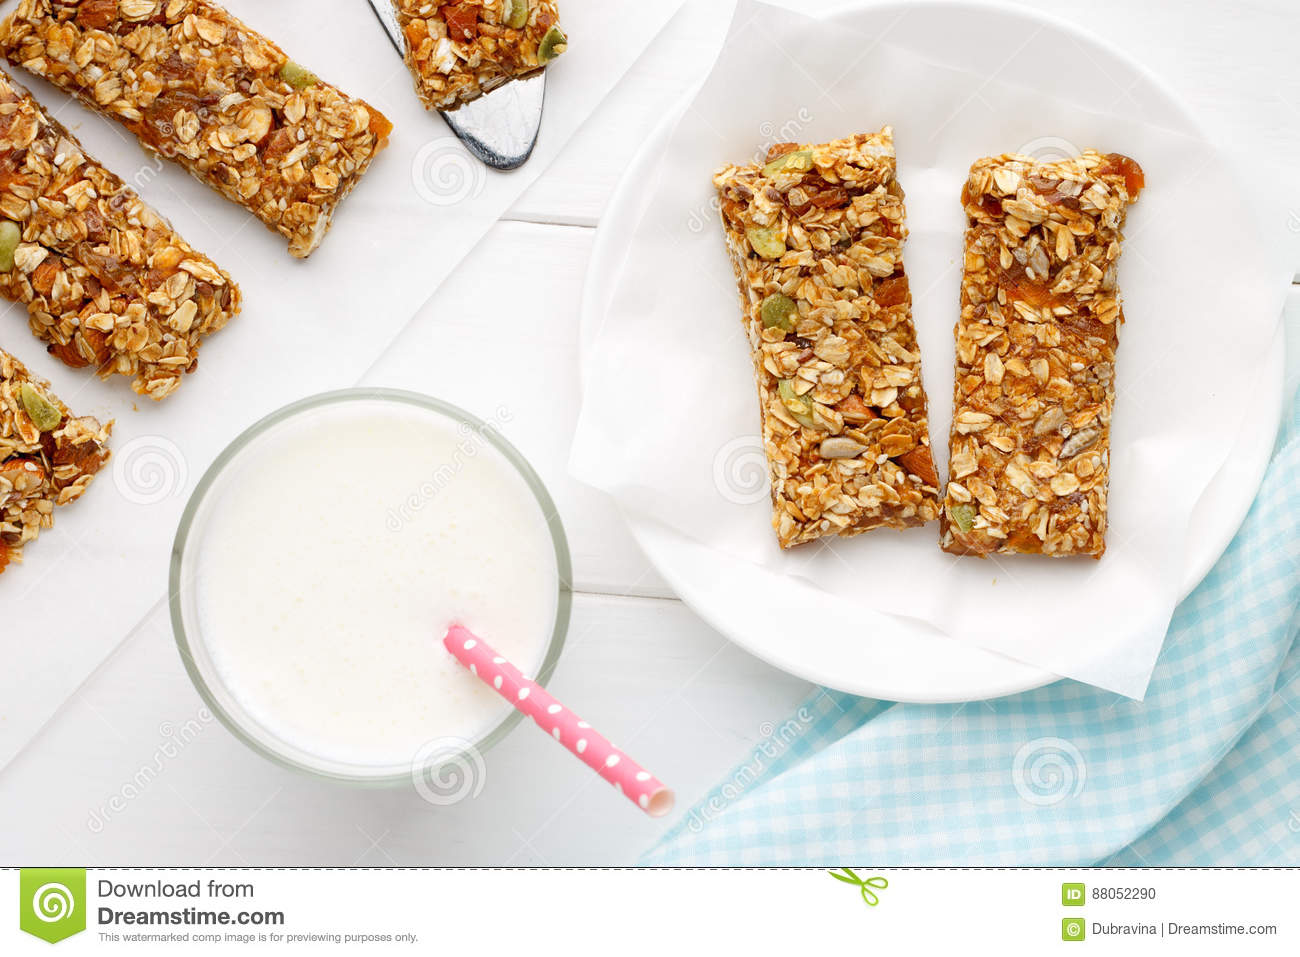 Homemade cereal snacks for healthy eating granola bars with milk on download homemade cereal snacks for healthy eating granola bars with milk on white wooden background ccuart Image collections